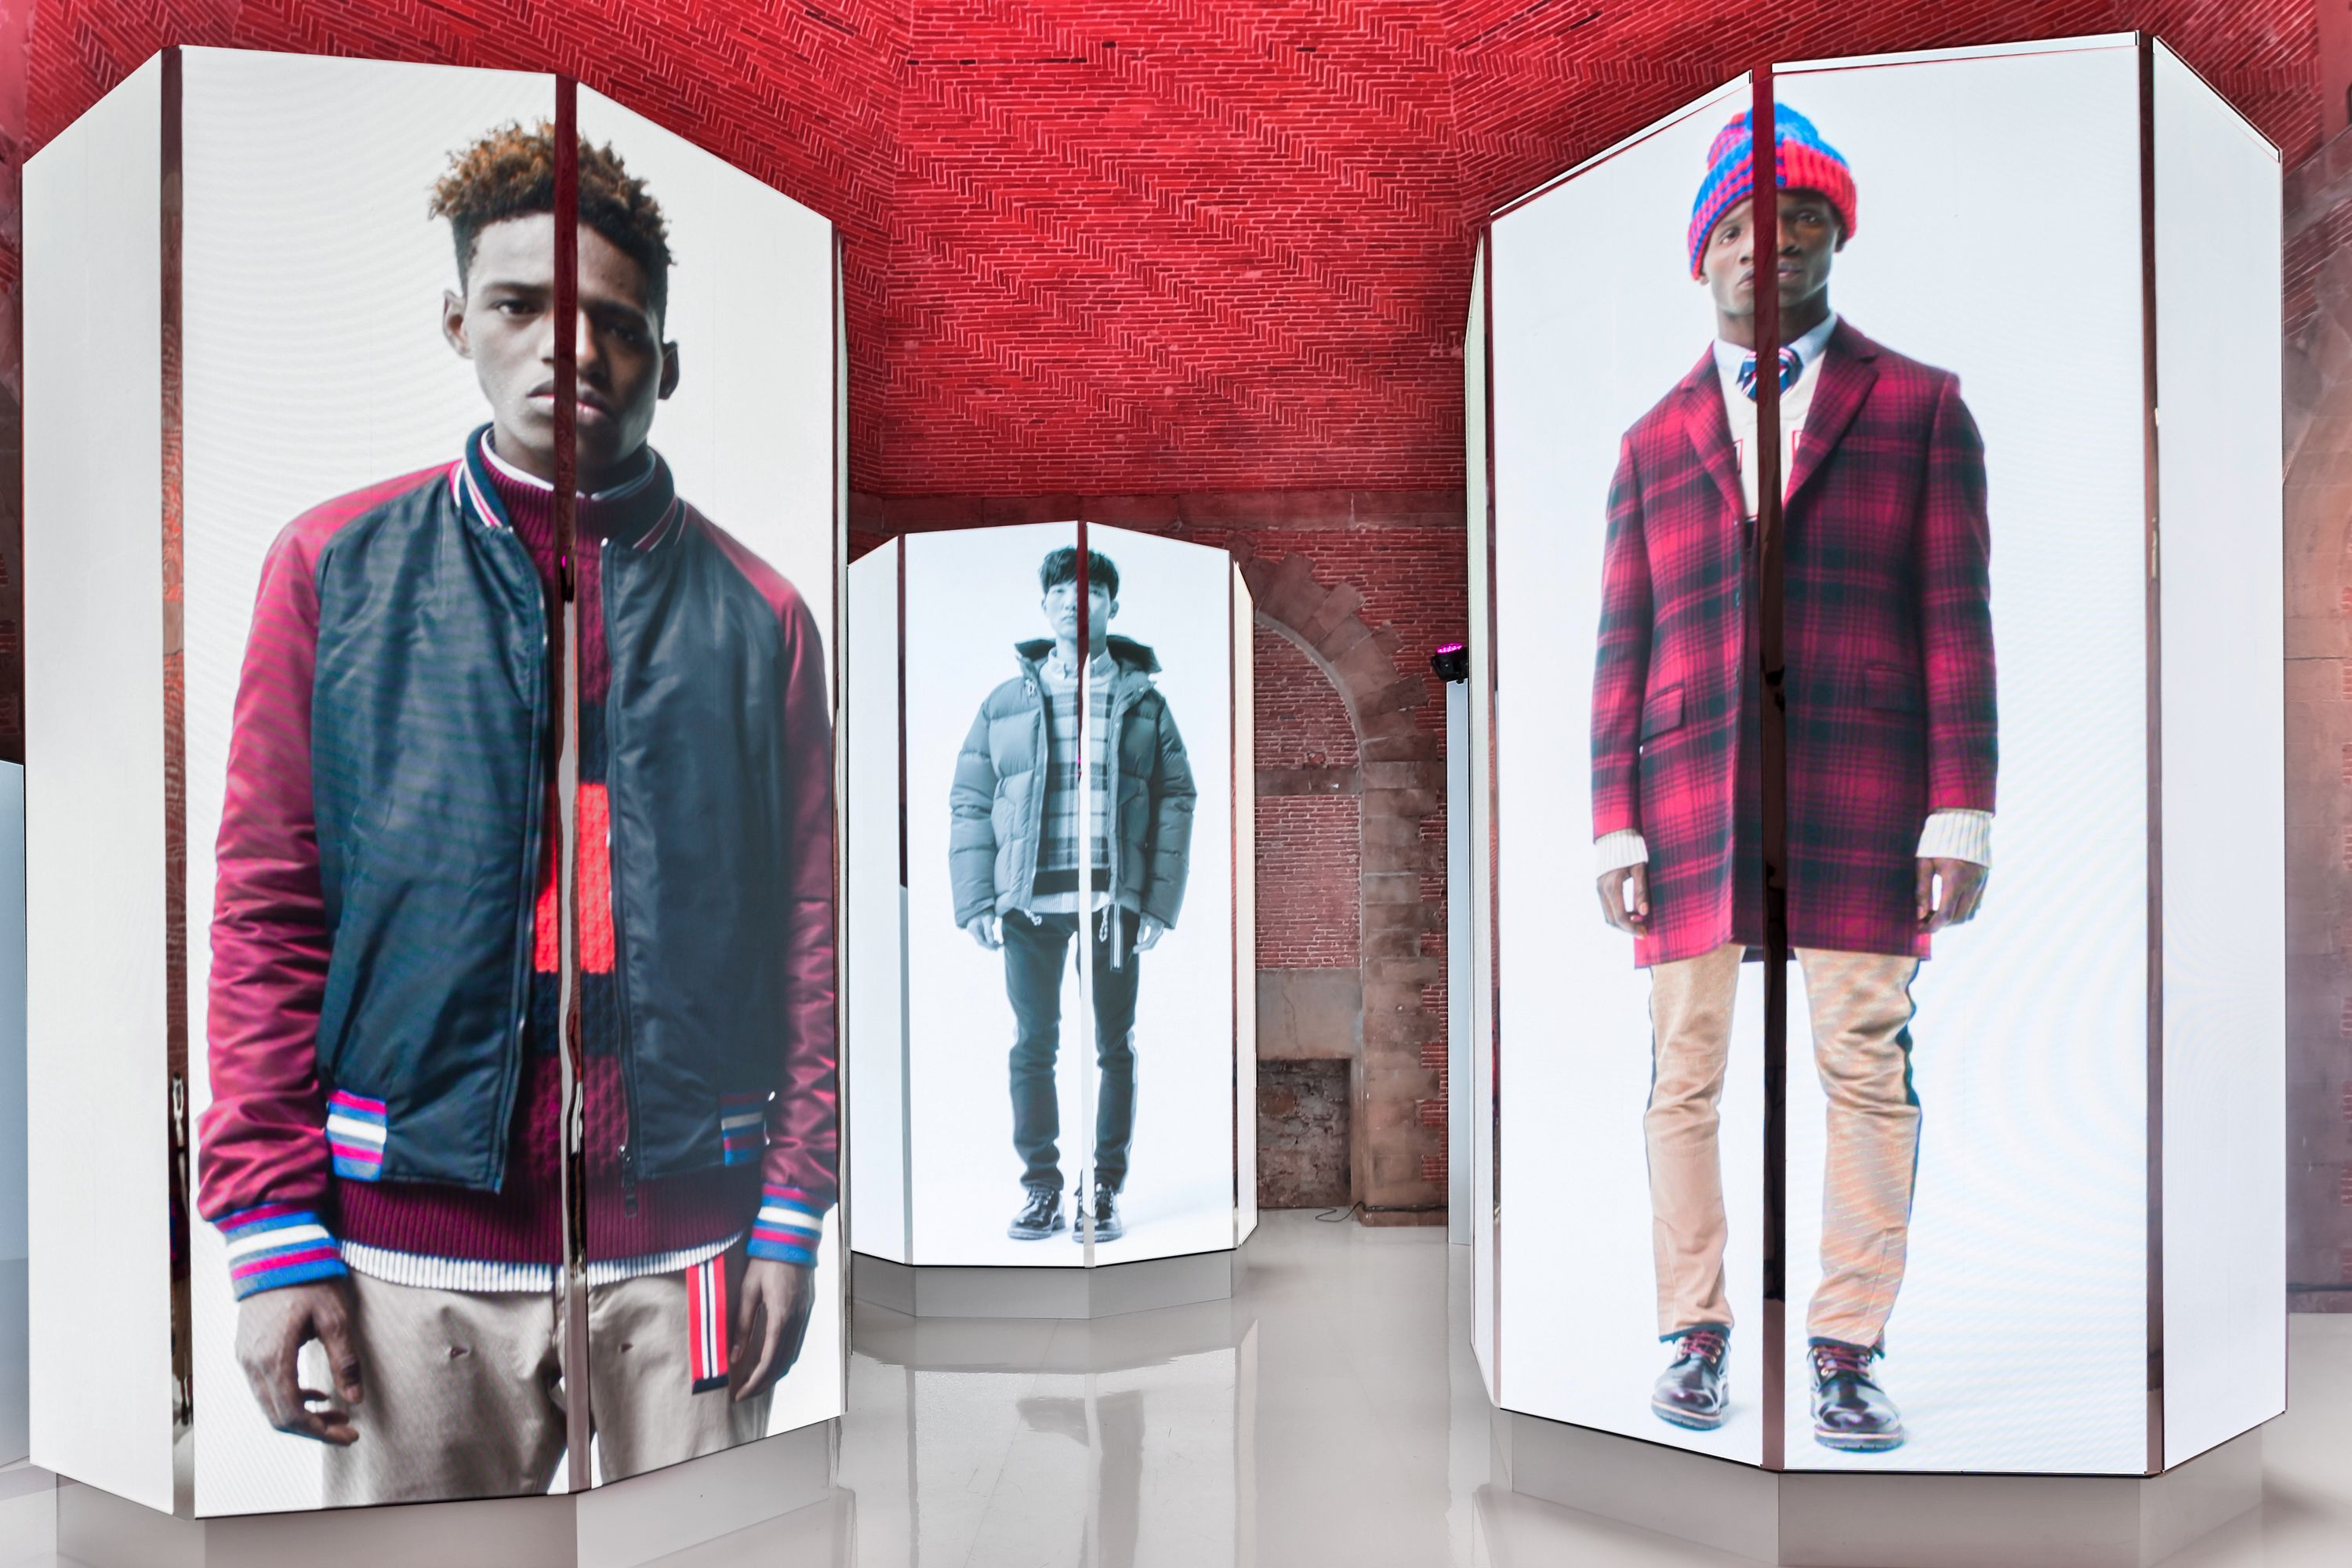 c4b354118ffa55 Highlights from Tommy Hilfiger PITTI Florence Florence Italy